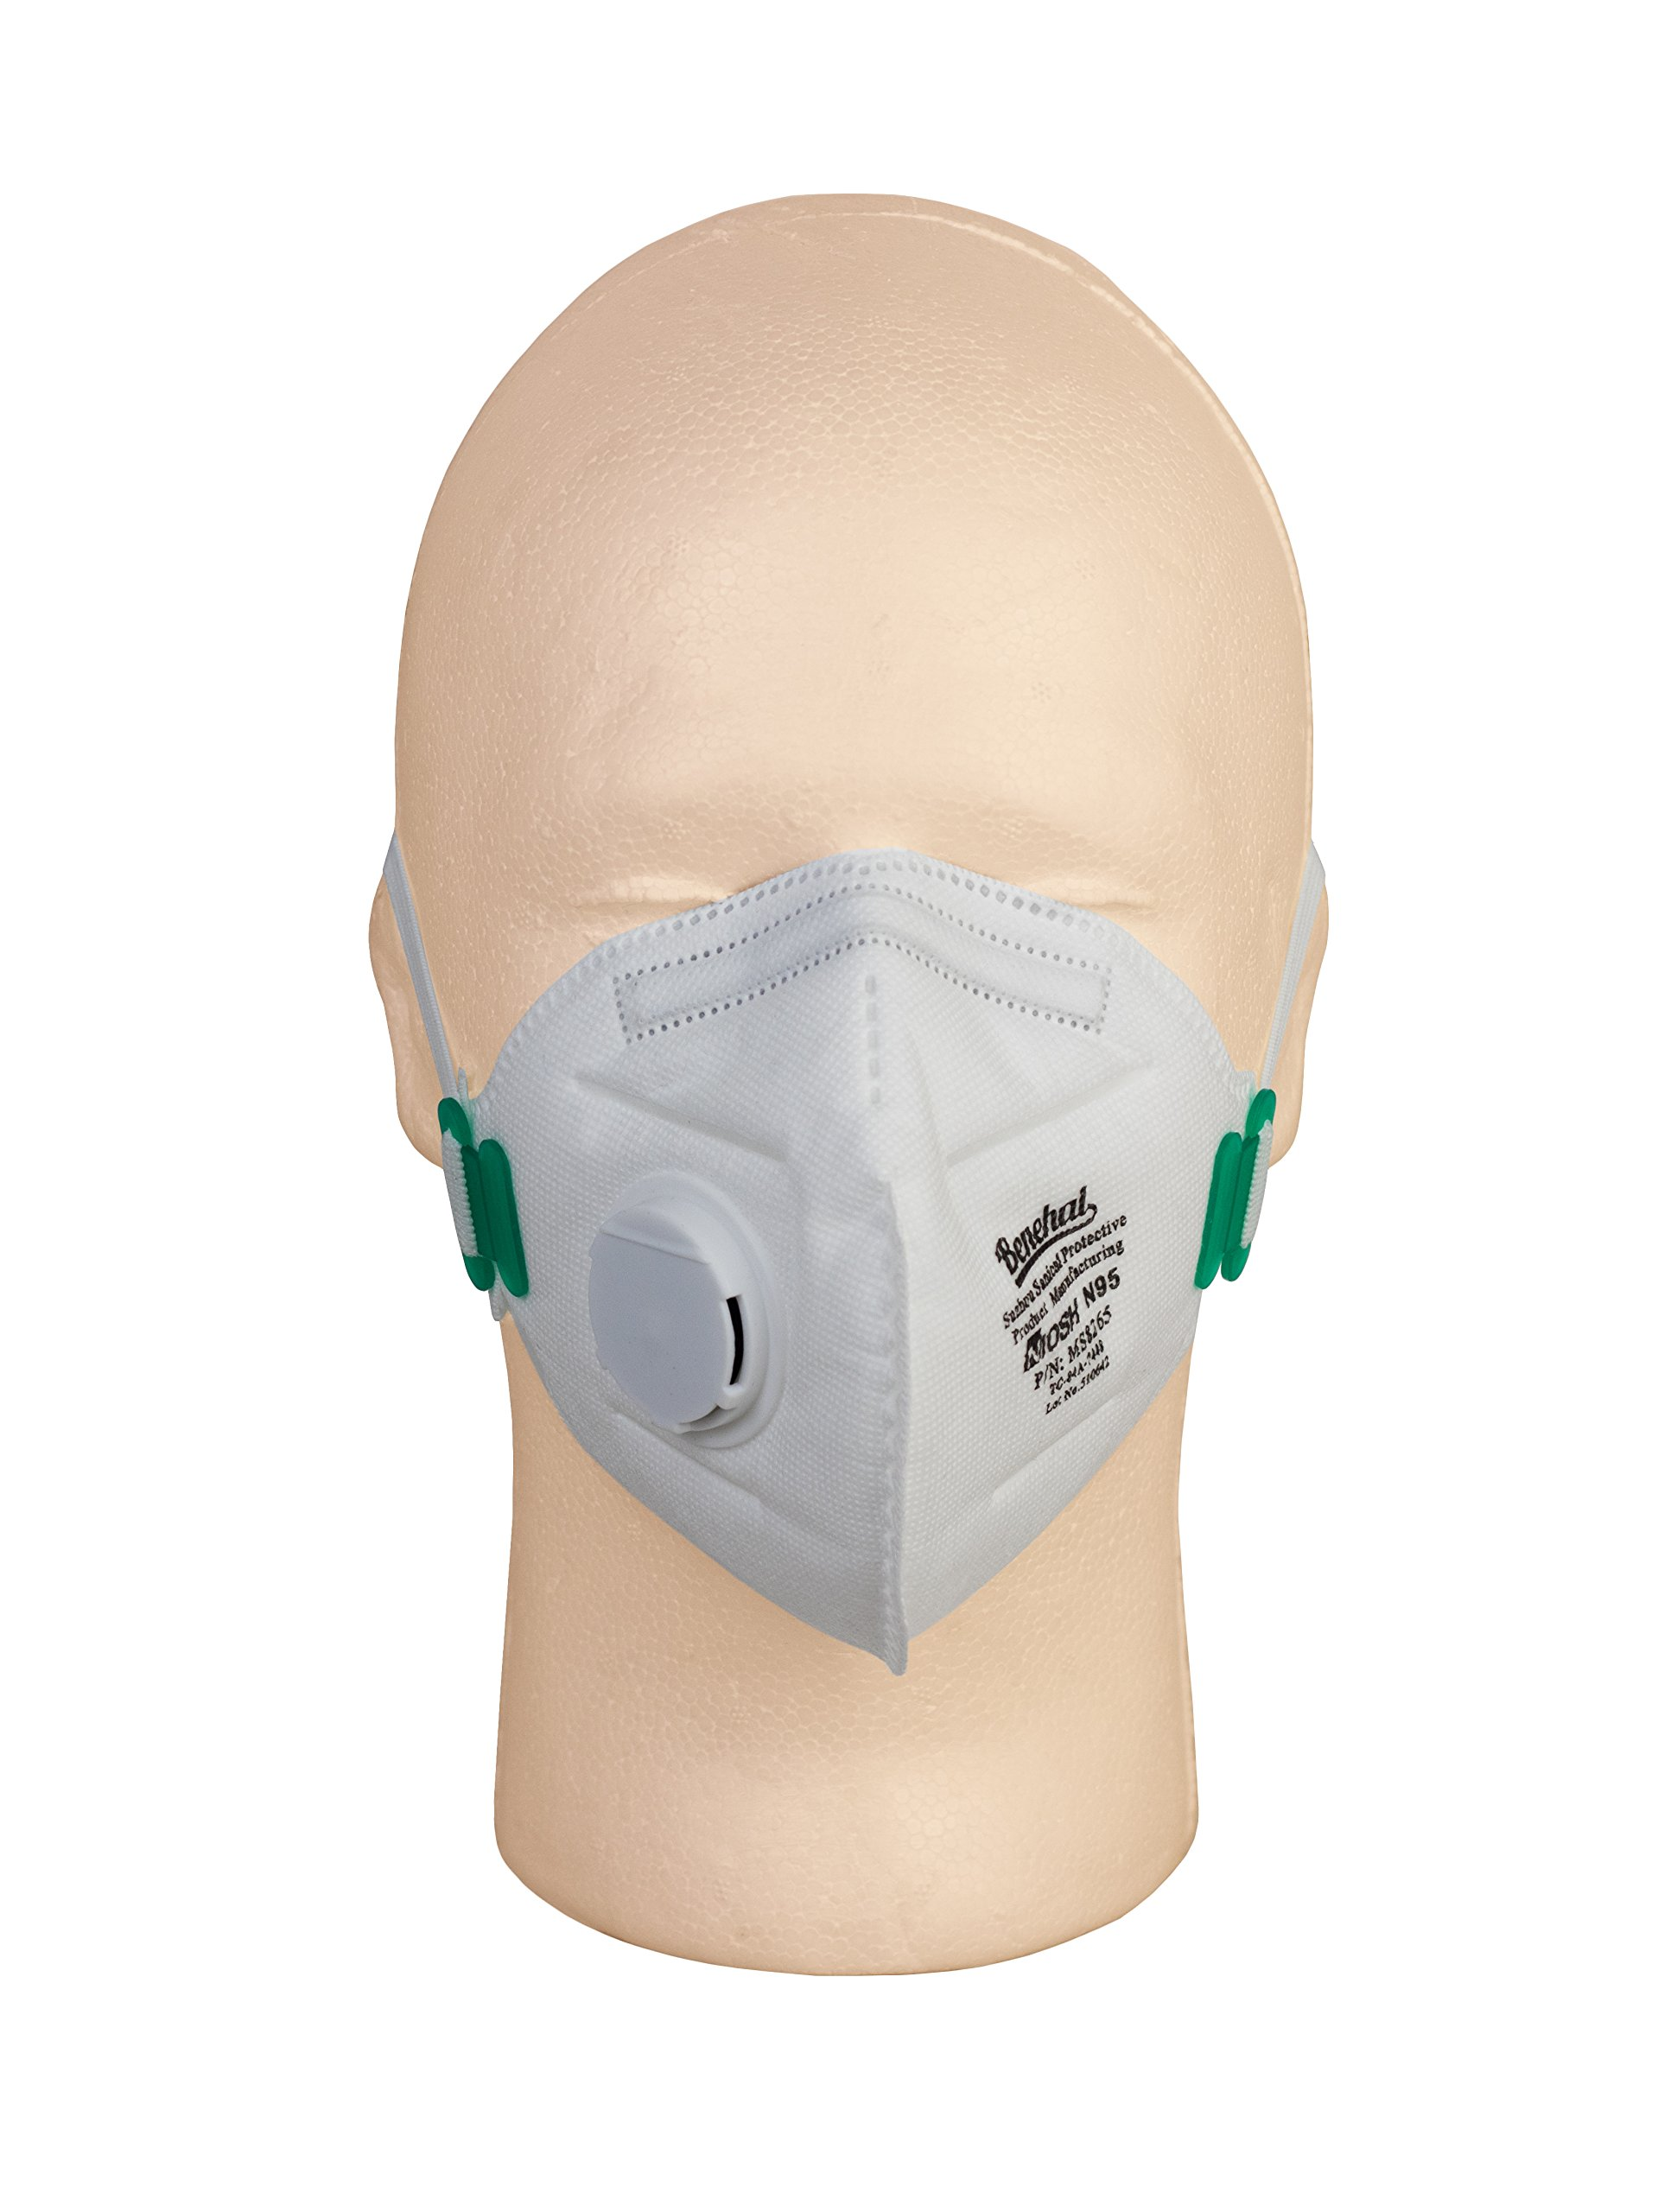 PneumaticPlus Benehal Respirator Dust Mask - NIOSH N95 Approved with Nose Clip & Exhaust Valve (Pack of 200)